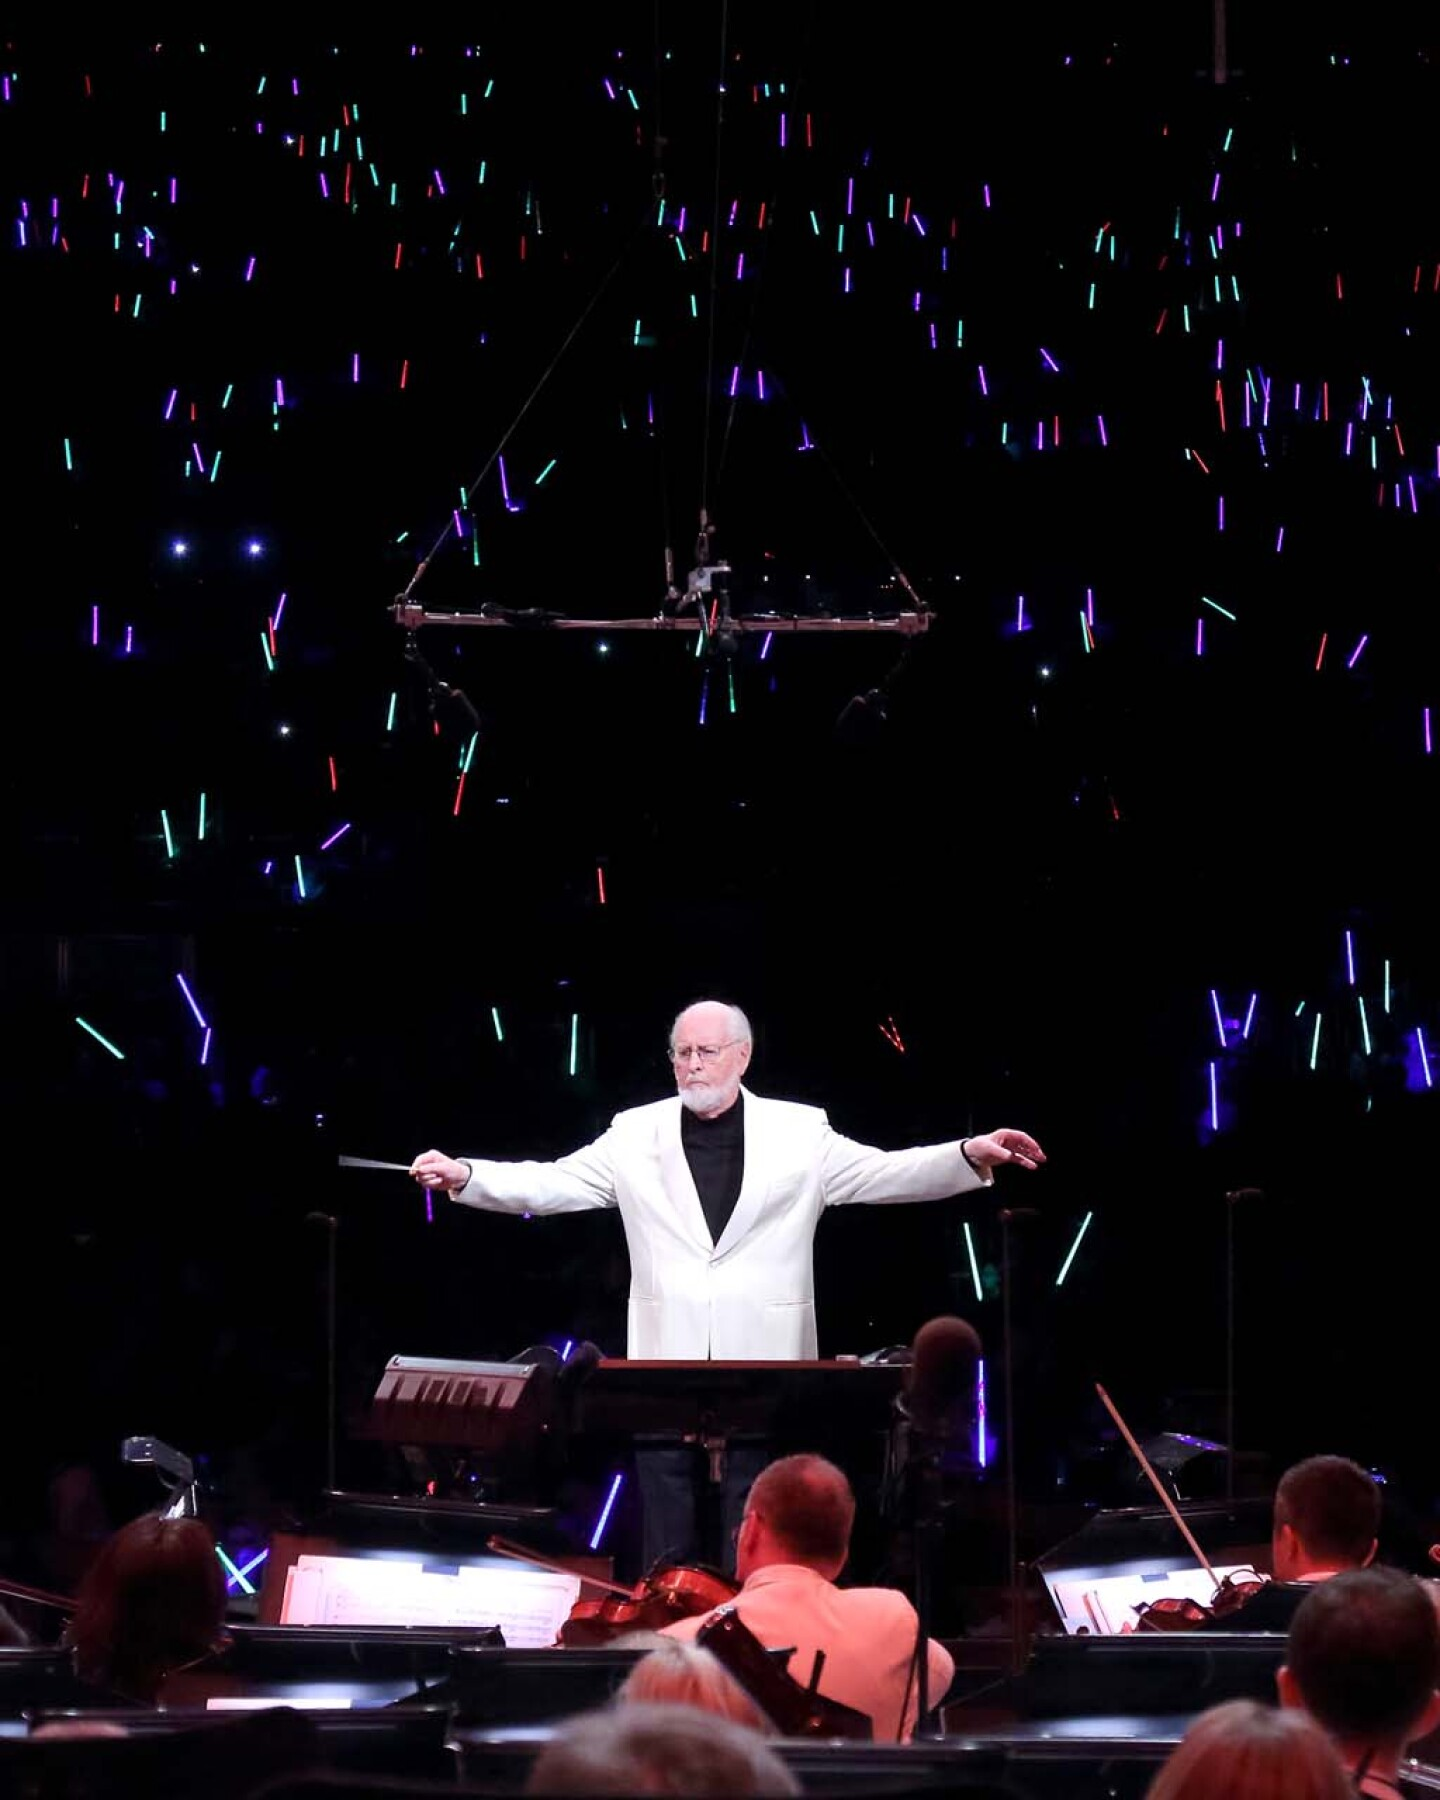 John Williams conducts the LA Phil at the Hollywood Bowl | Craig T. Mathew/Mathew Imaging